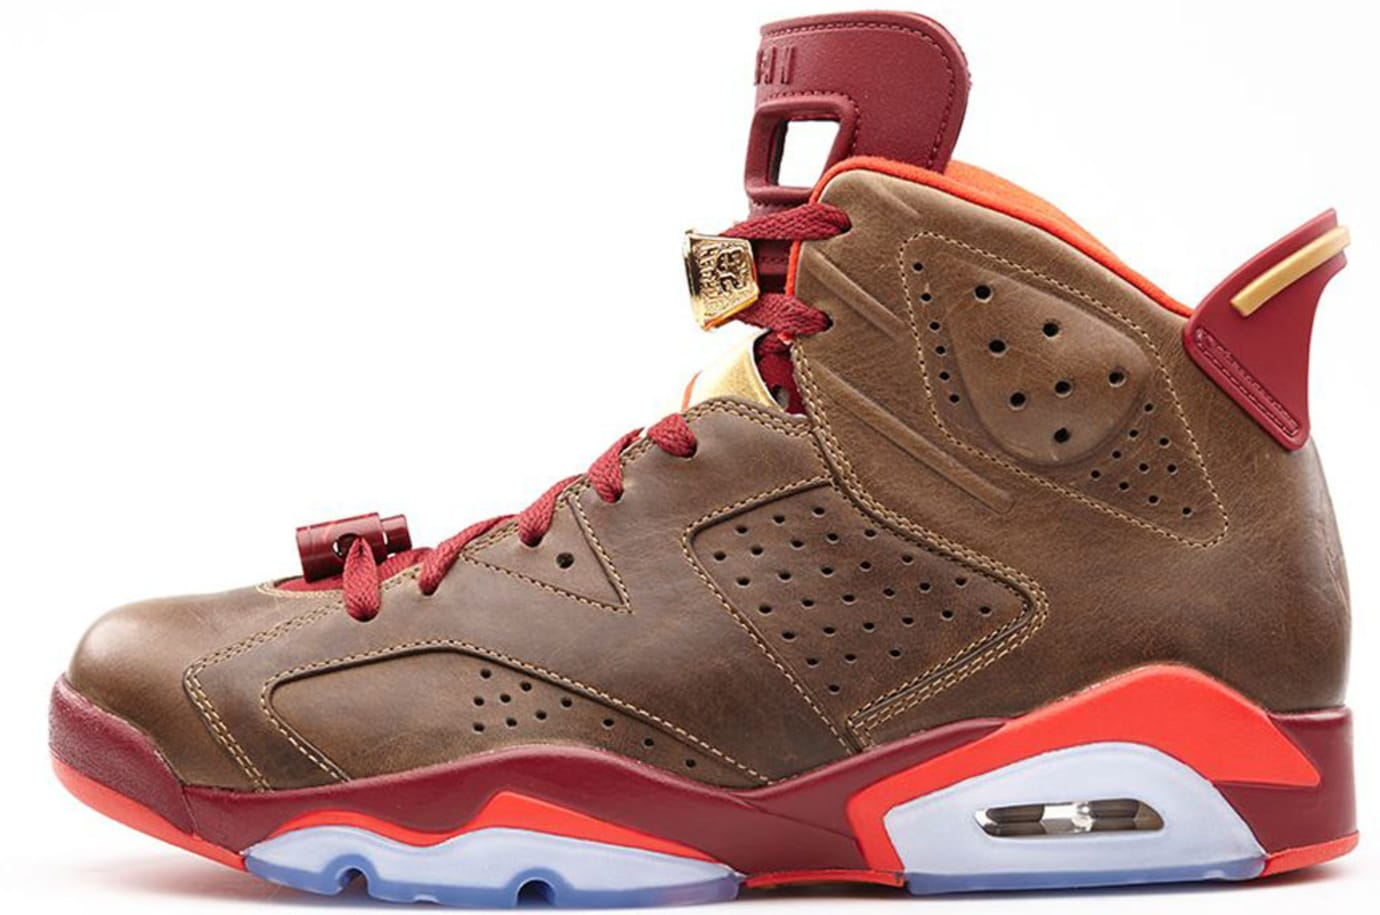 024652ee4270a8 Cigar Air Jordan 6 Sample